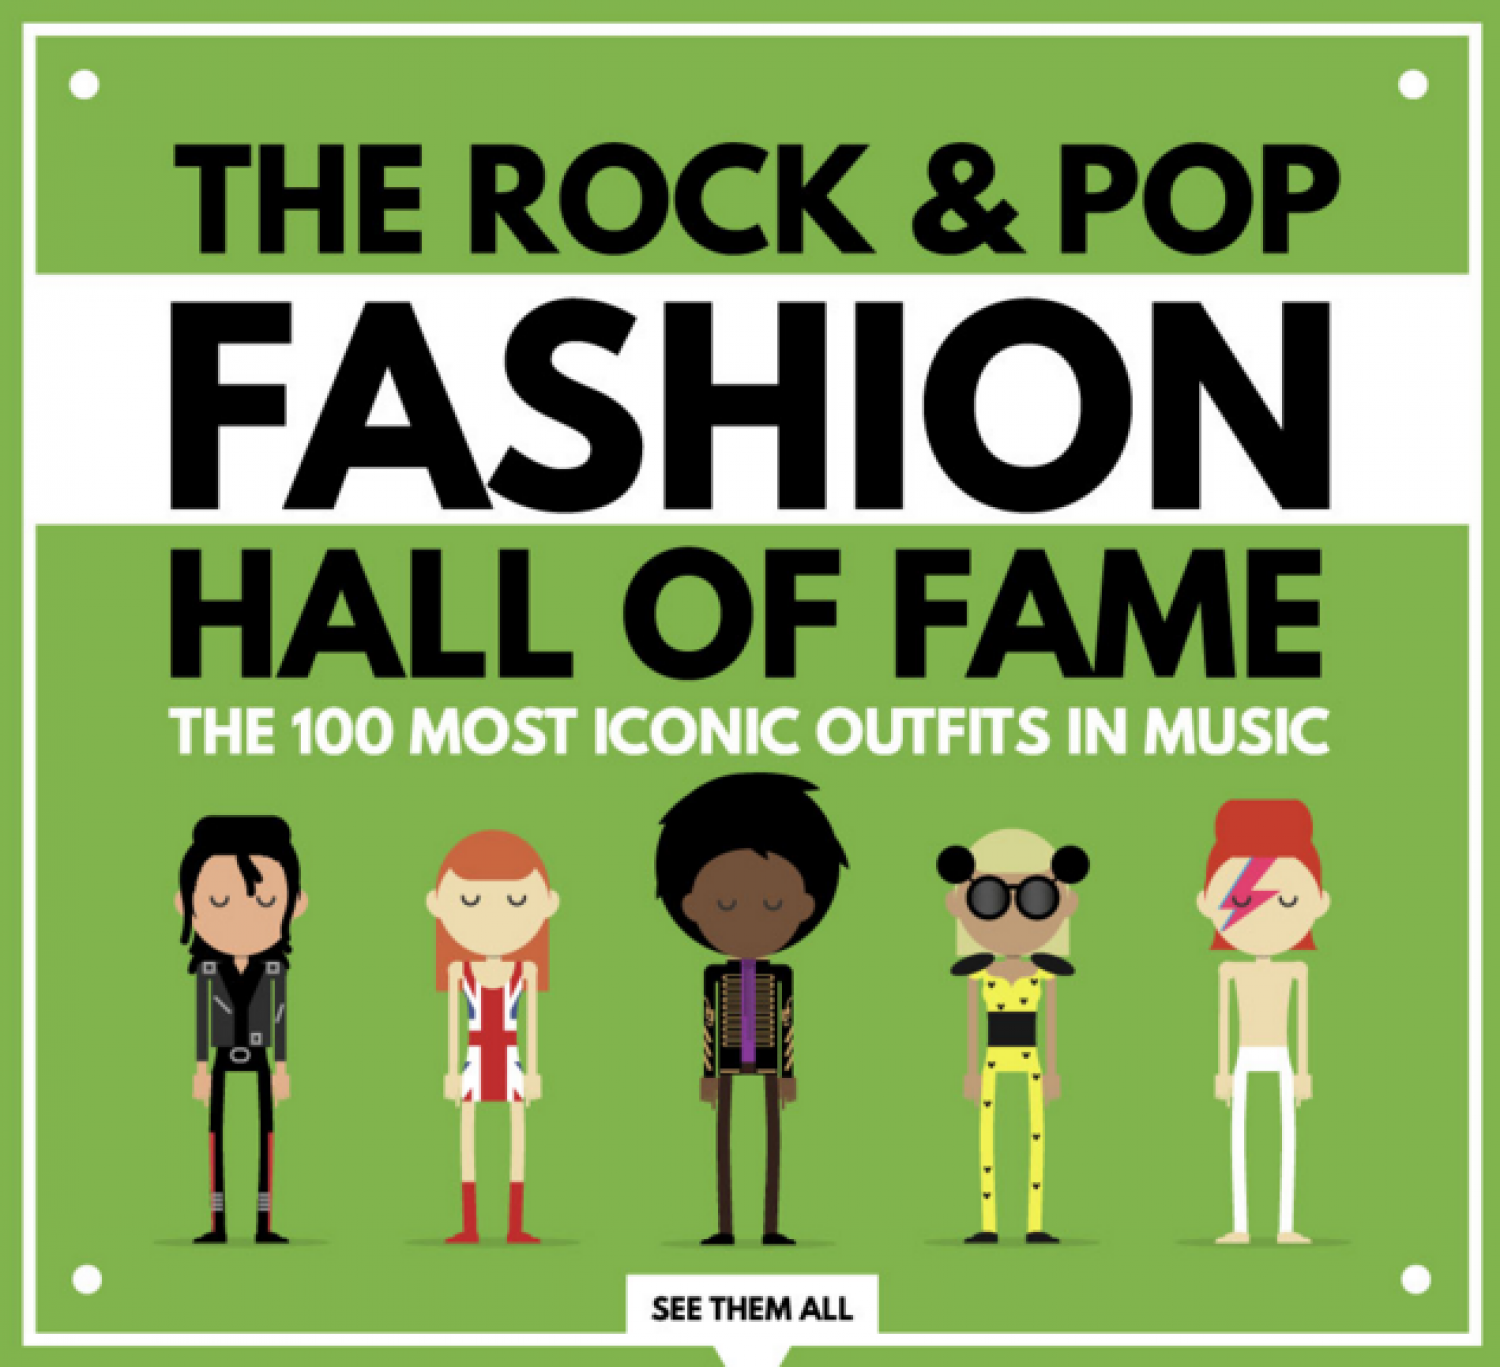 The 100 Most Iconic Outfits in Music Infographic